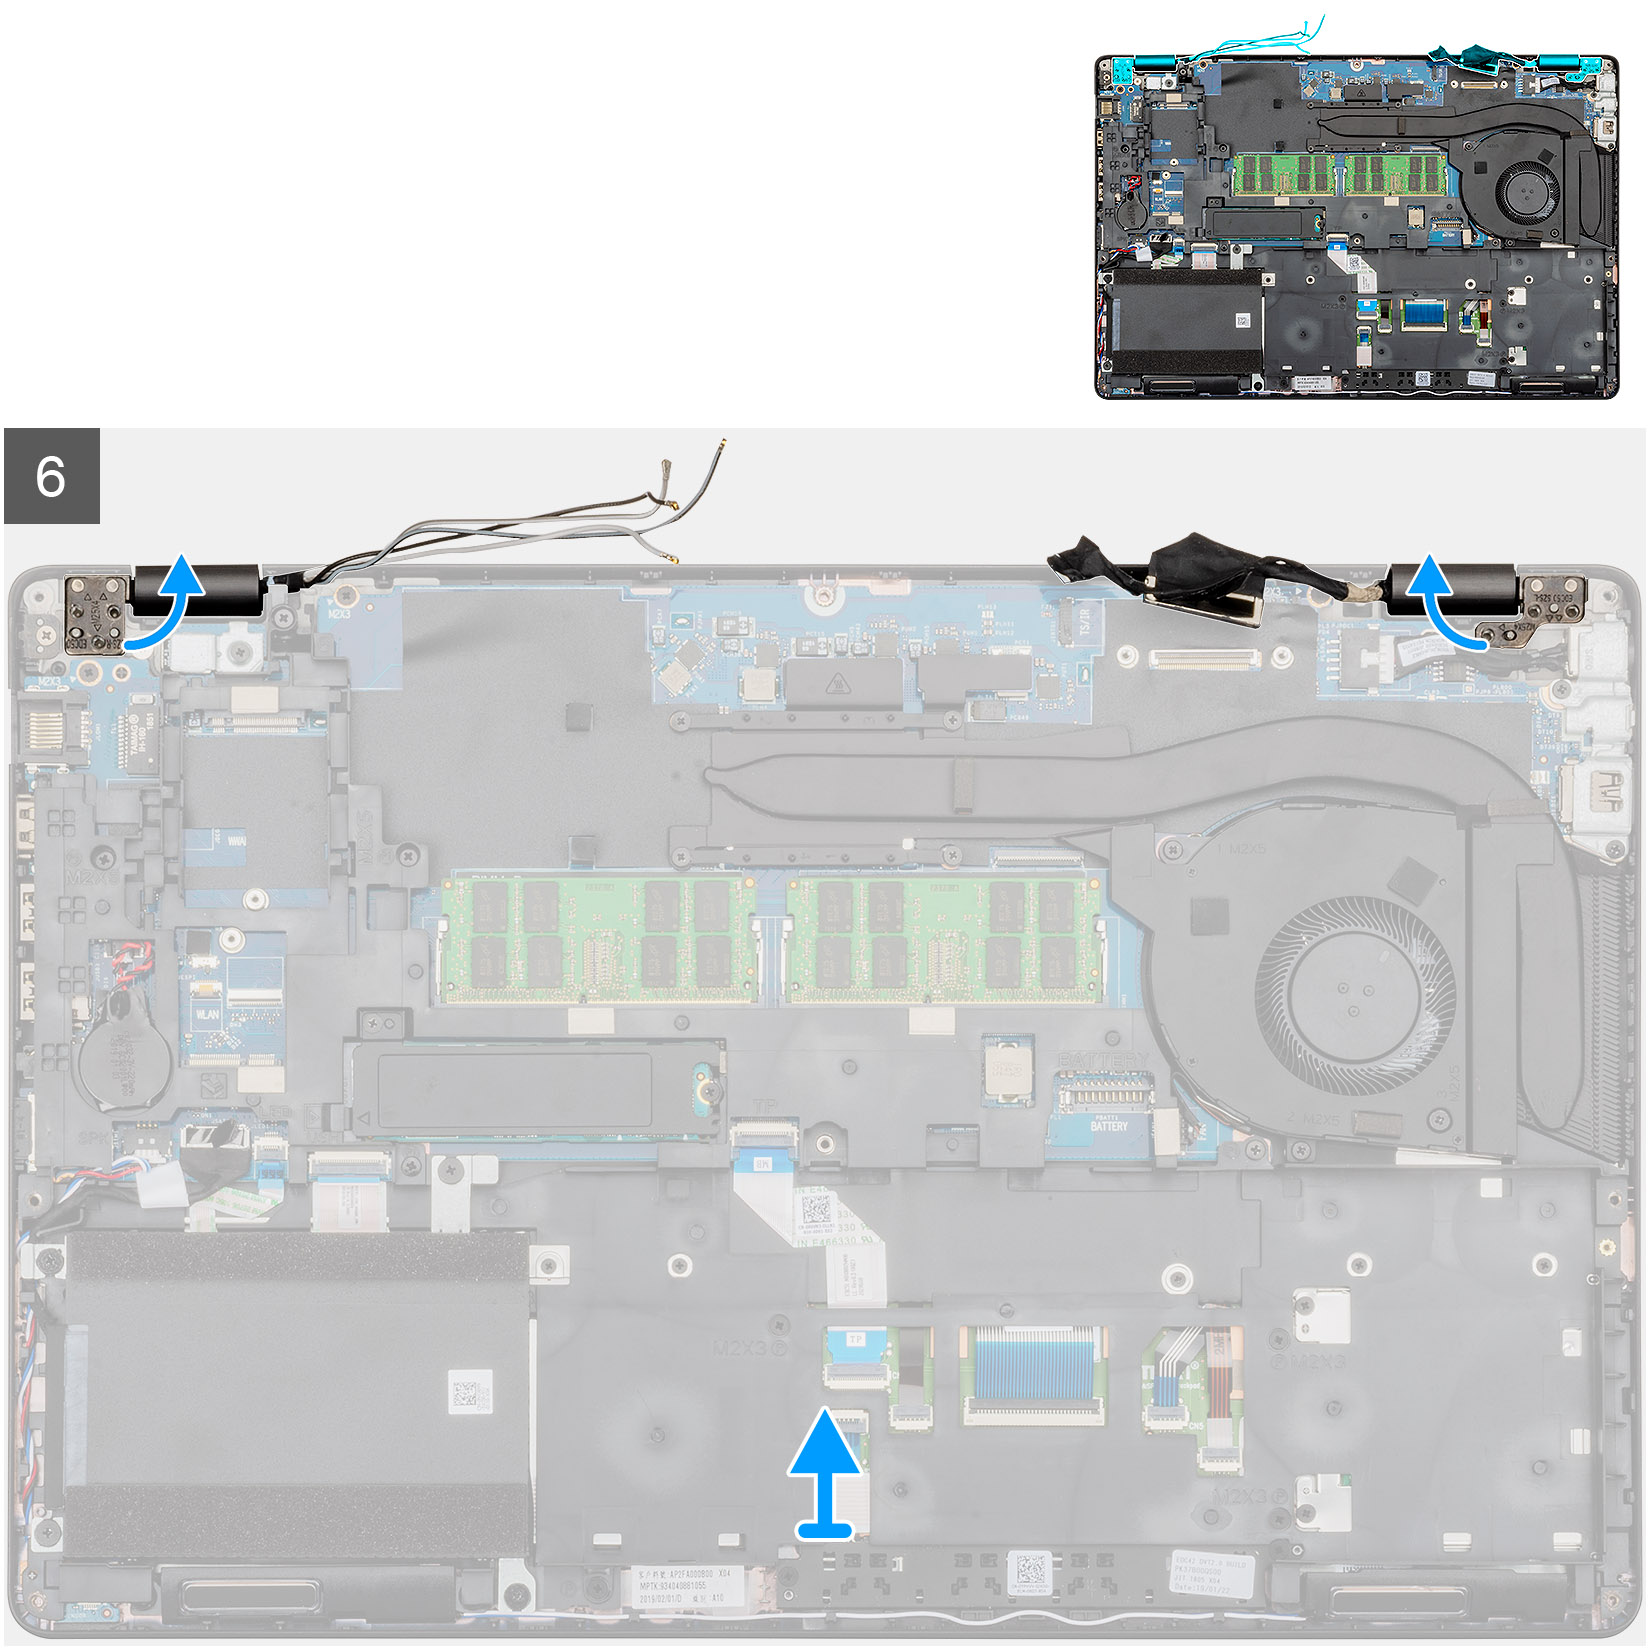 Removing the display assembly